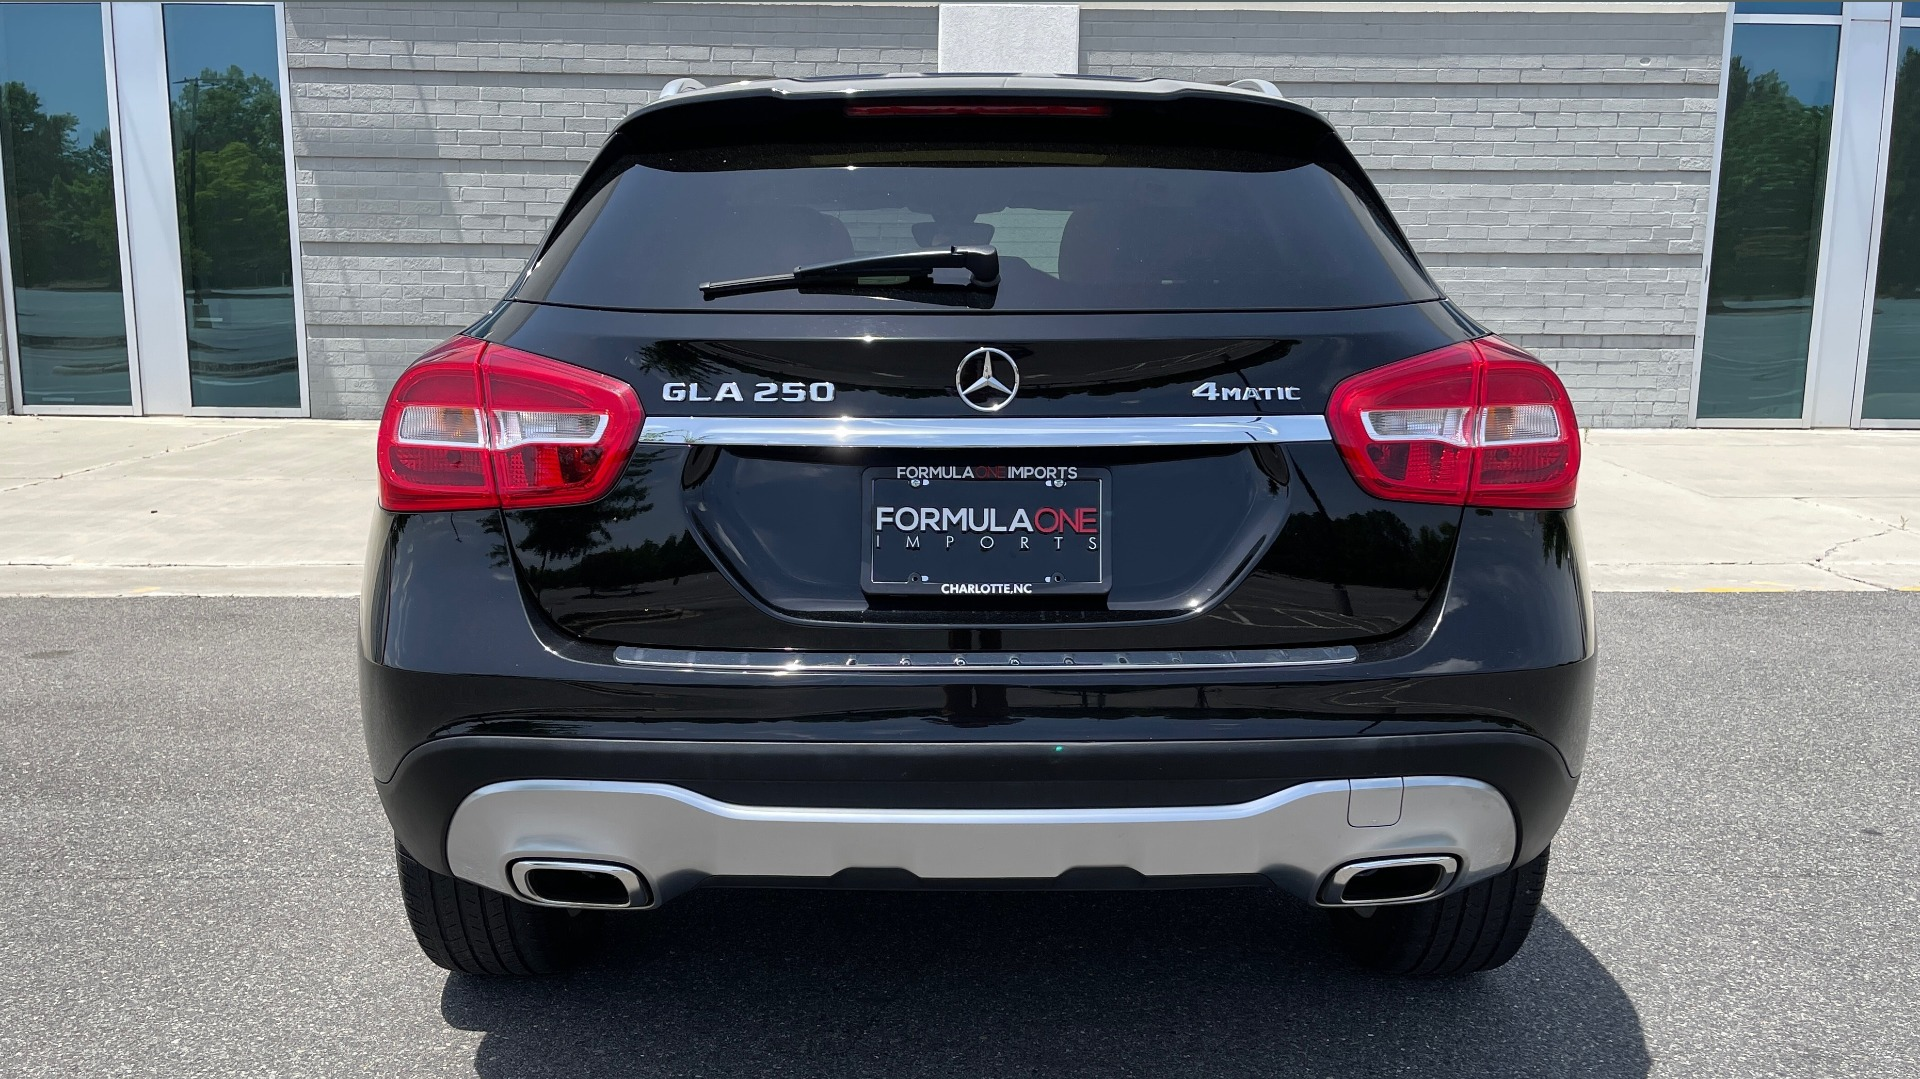 Used 2018 Mercedes-Benz GLA 250 4MATIC SUV / PANO-ROOF / HTD STS / BLIND SPOT ASST / APPLE for sale $31,995 at Formula Imports in Charlotte NC 28227 22